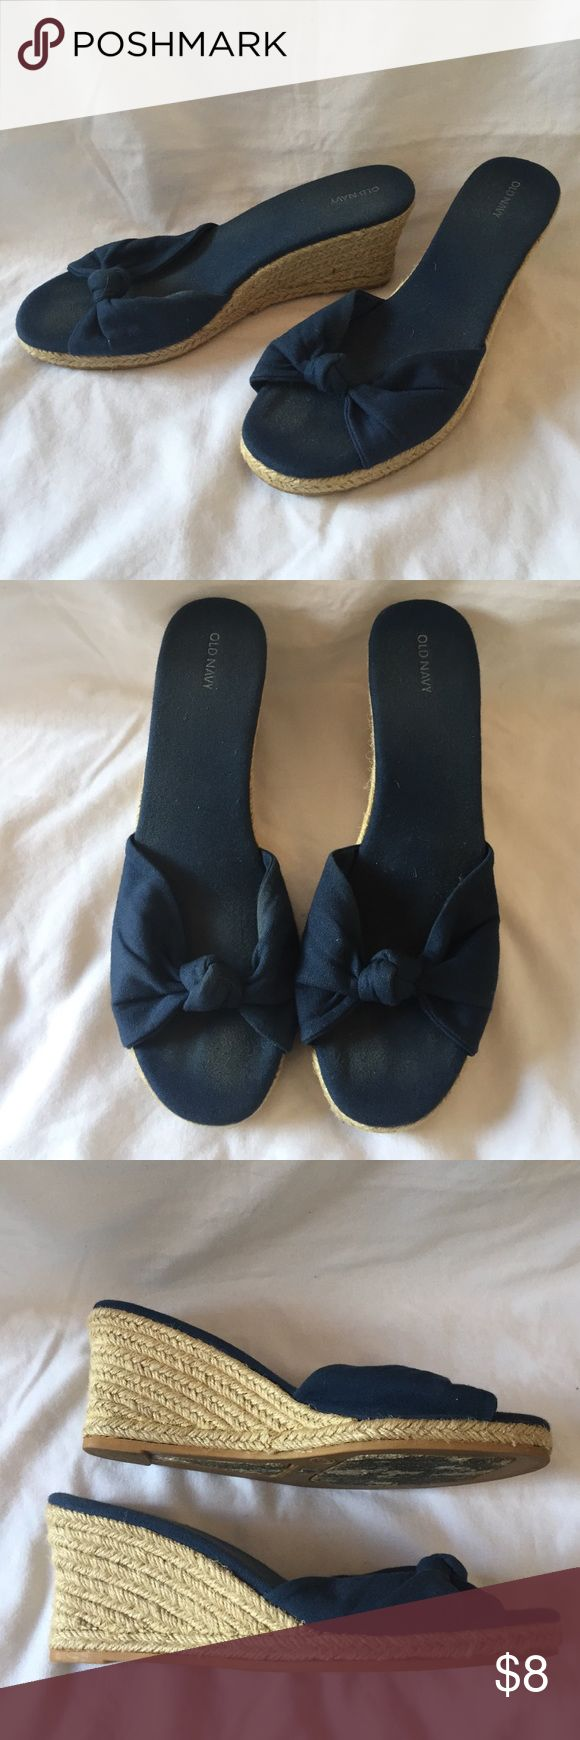 Navy Espadrille Wedges! Cute navy espadrilles that are perfect for summer! Only worn a few times and in overall good condition! There is some wearing where my foot has been because of the linen fabric, but is not noticeable when worn!  About 2.5 inches in height. Size 9! Old Navy Shoes Espadrilles